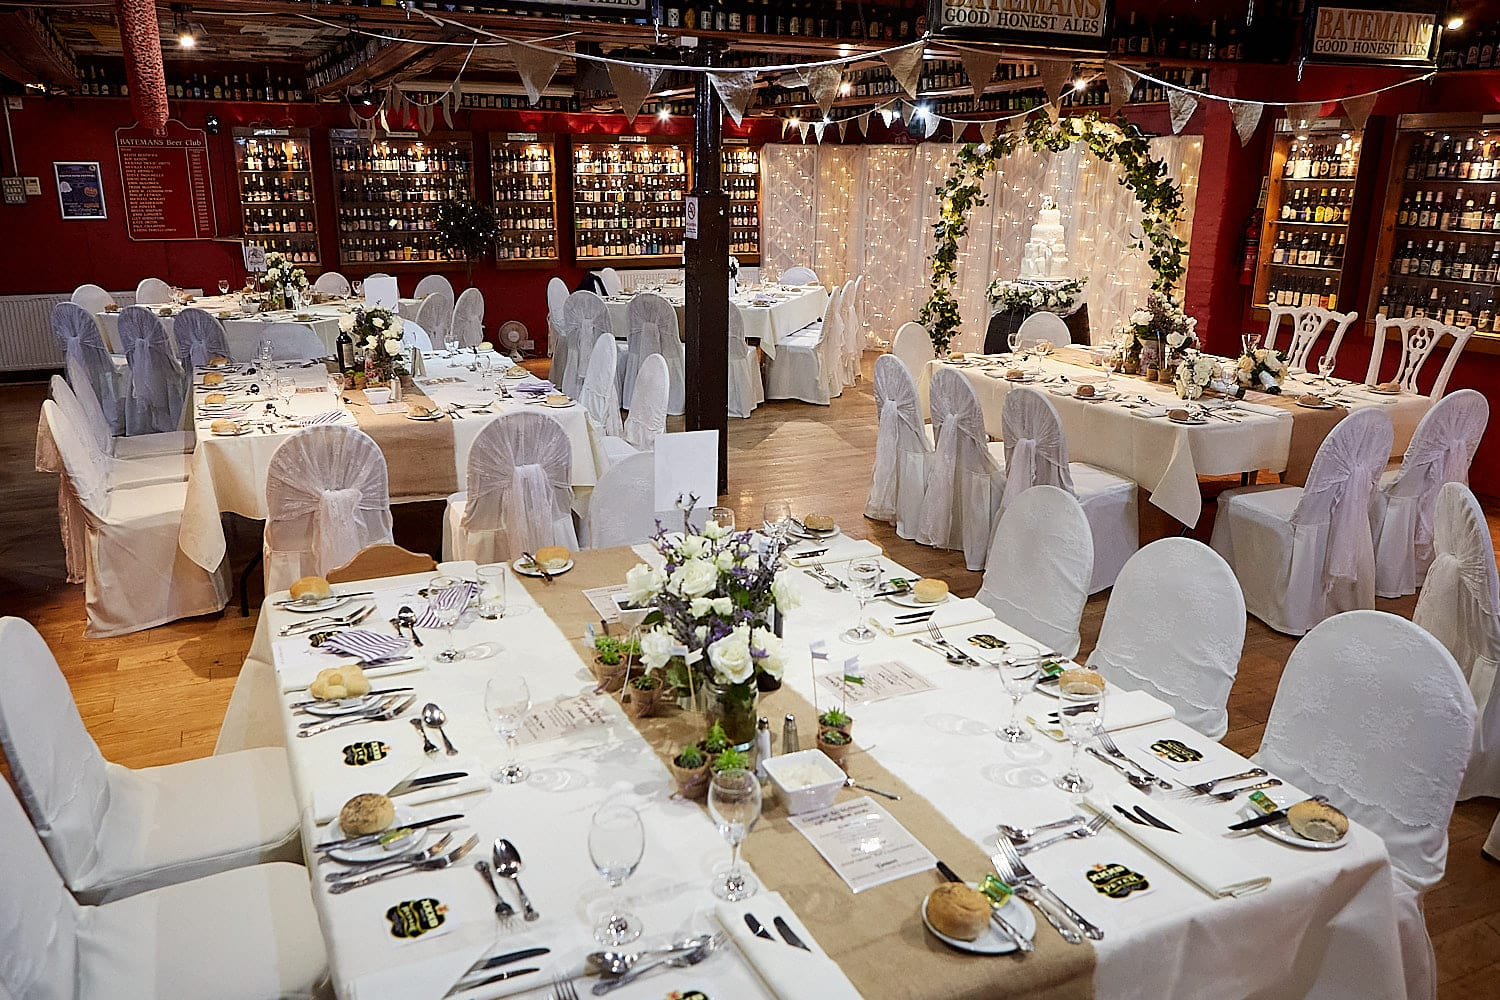 the wedding recpetion space at Batemans Brewery in Wainfleet Lincolnshire